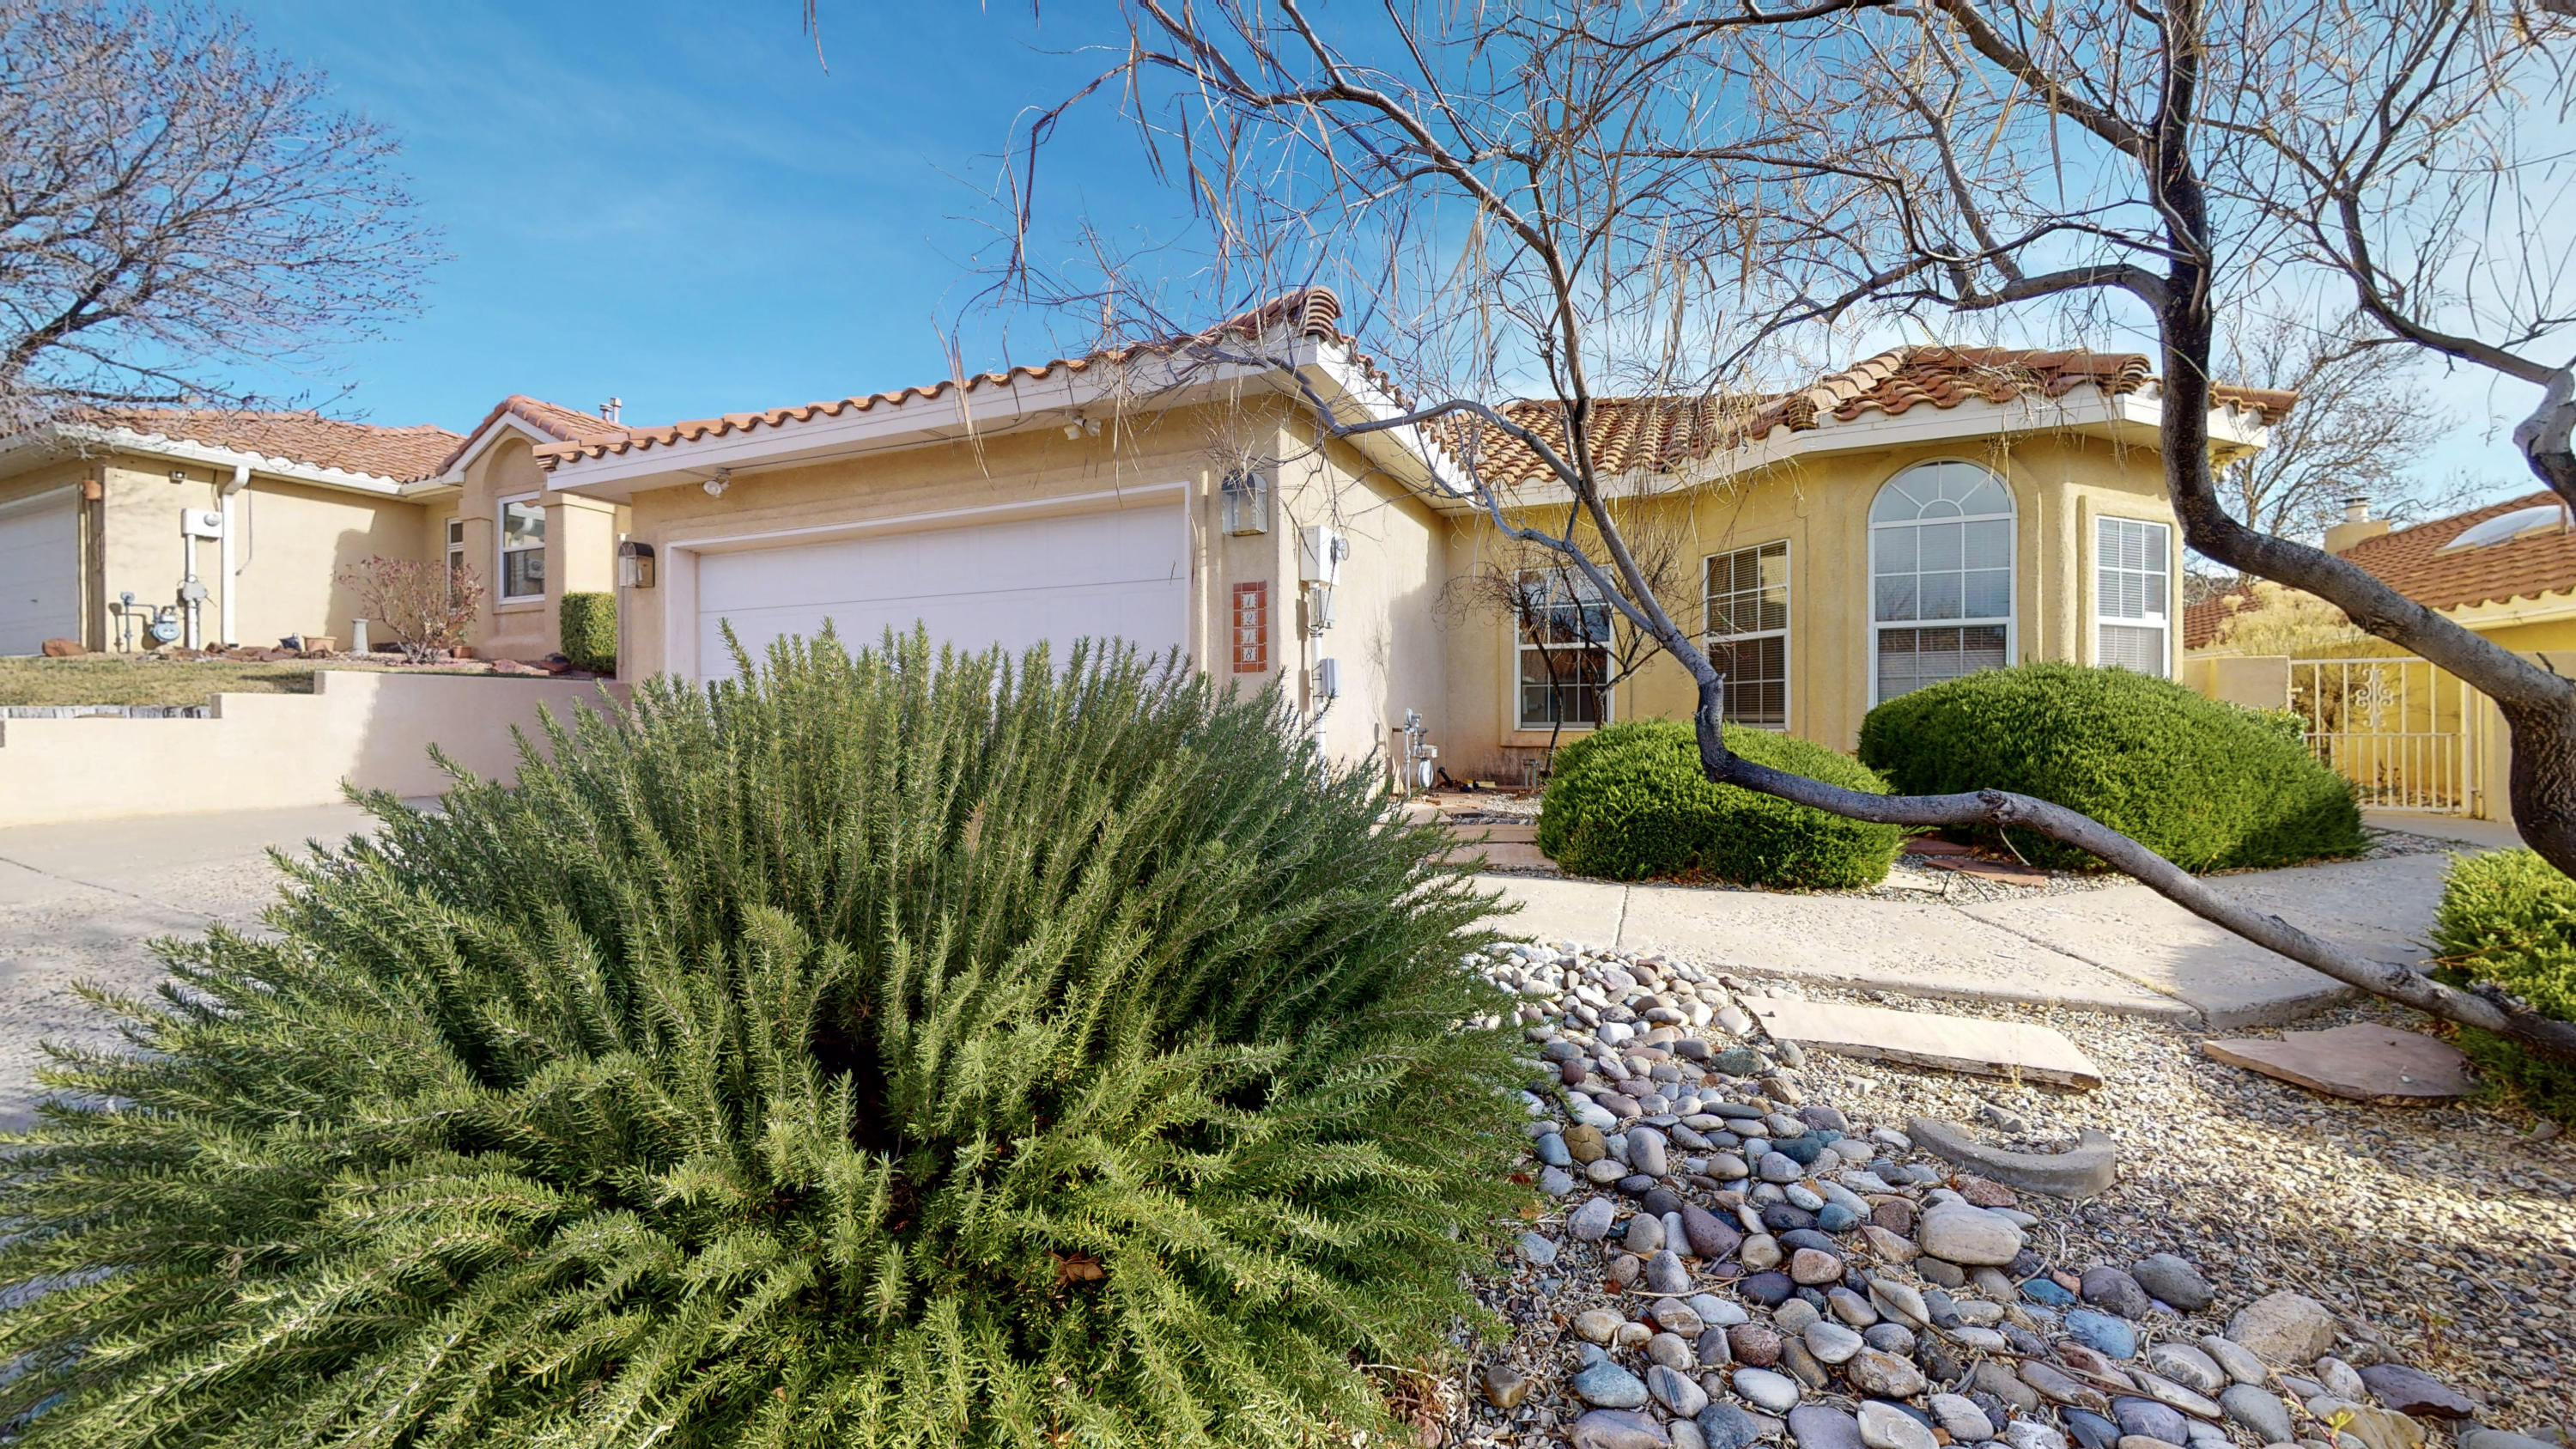 Pinnacle View Estates.  Beautiful home next to the foothills.  Open floor plan.  Lots of natural light.  Master suite is on the opposite side from the other two large bedrooms.Home is being sold as part of an estate.  Offers will be considered.